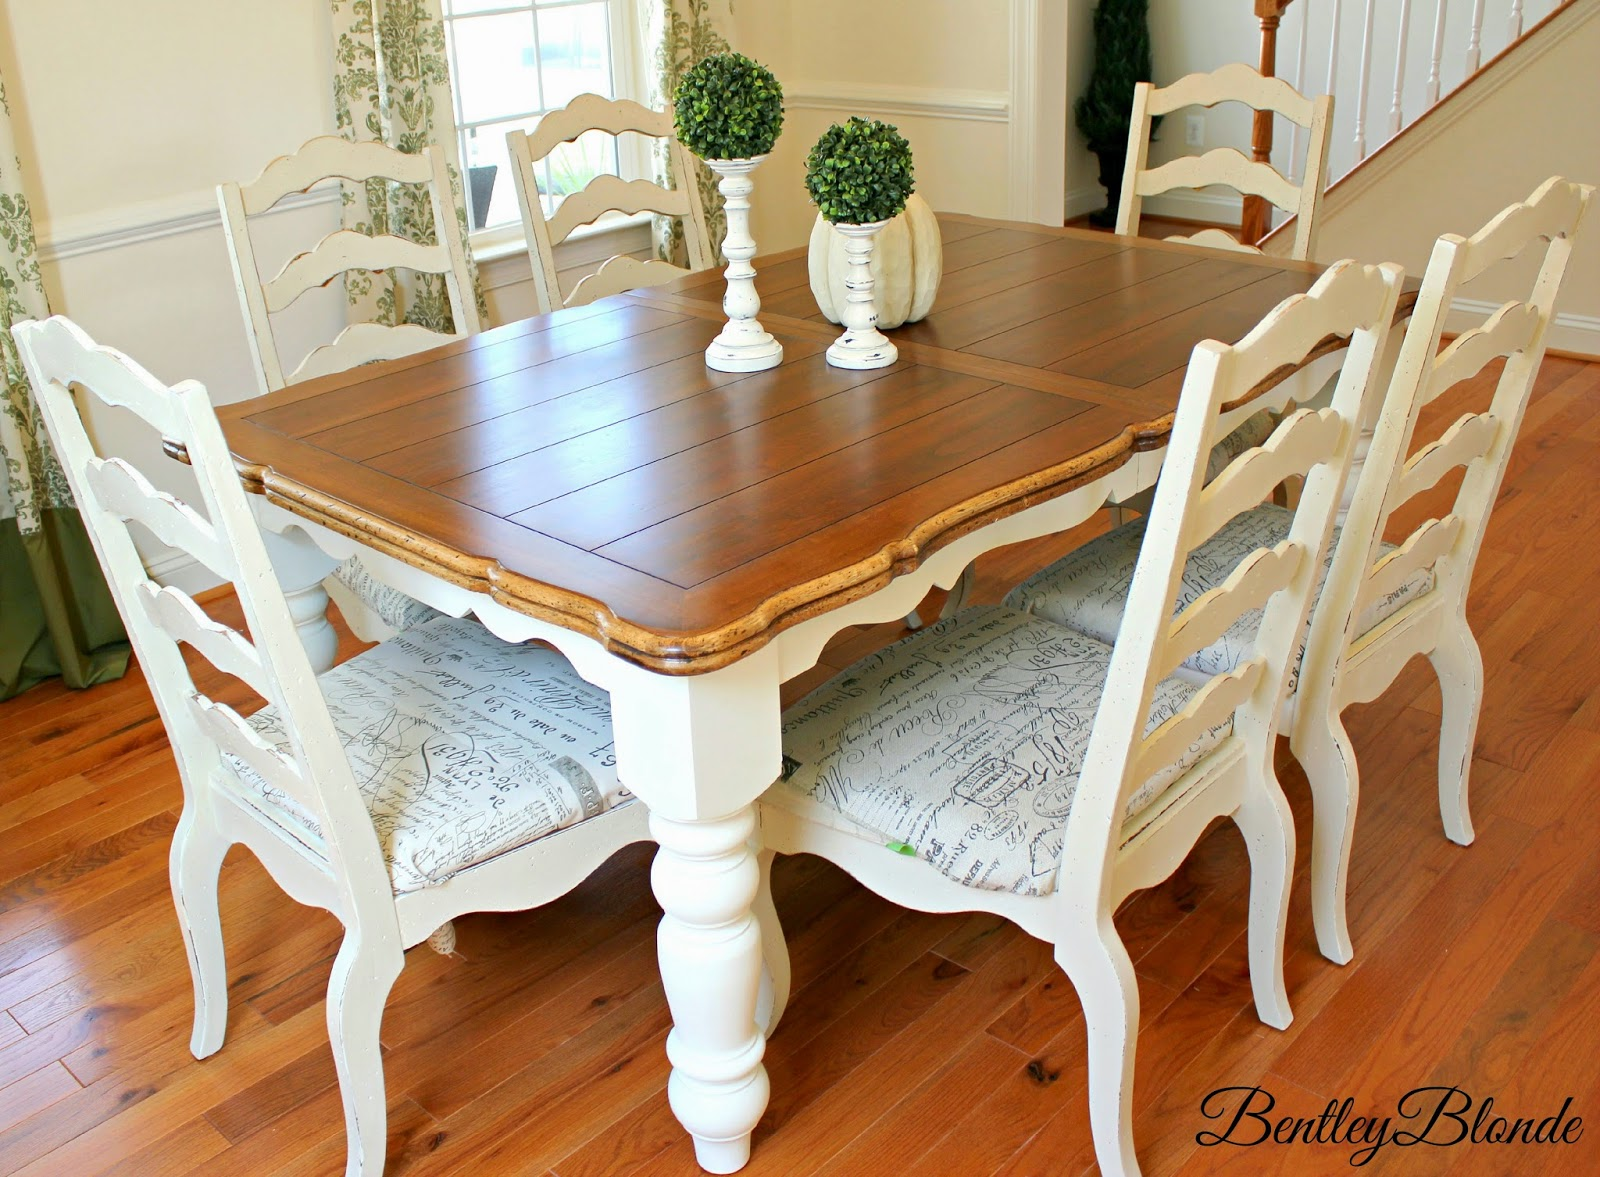 chunky dining table and chairs  white table legs amp ivory chairs i cant wait to sit around this table with family enjoying many delicious meals and memories together in the future